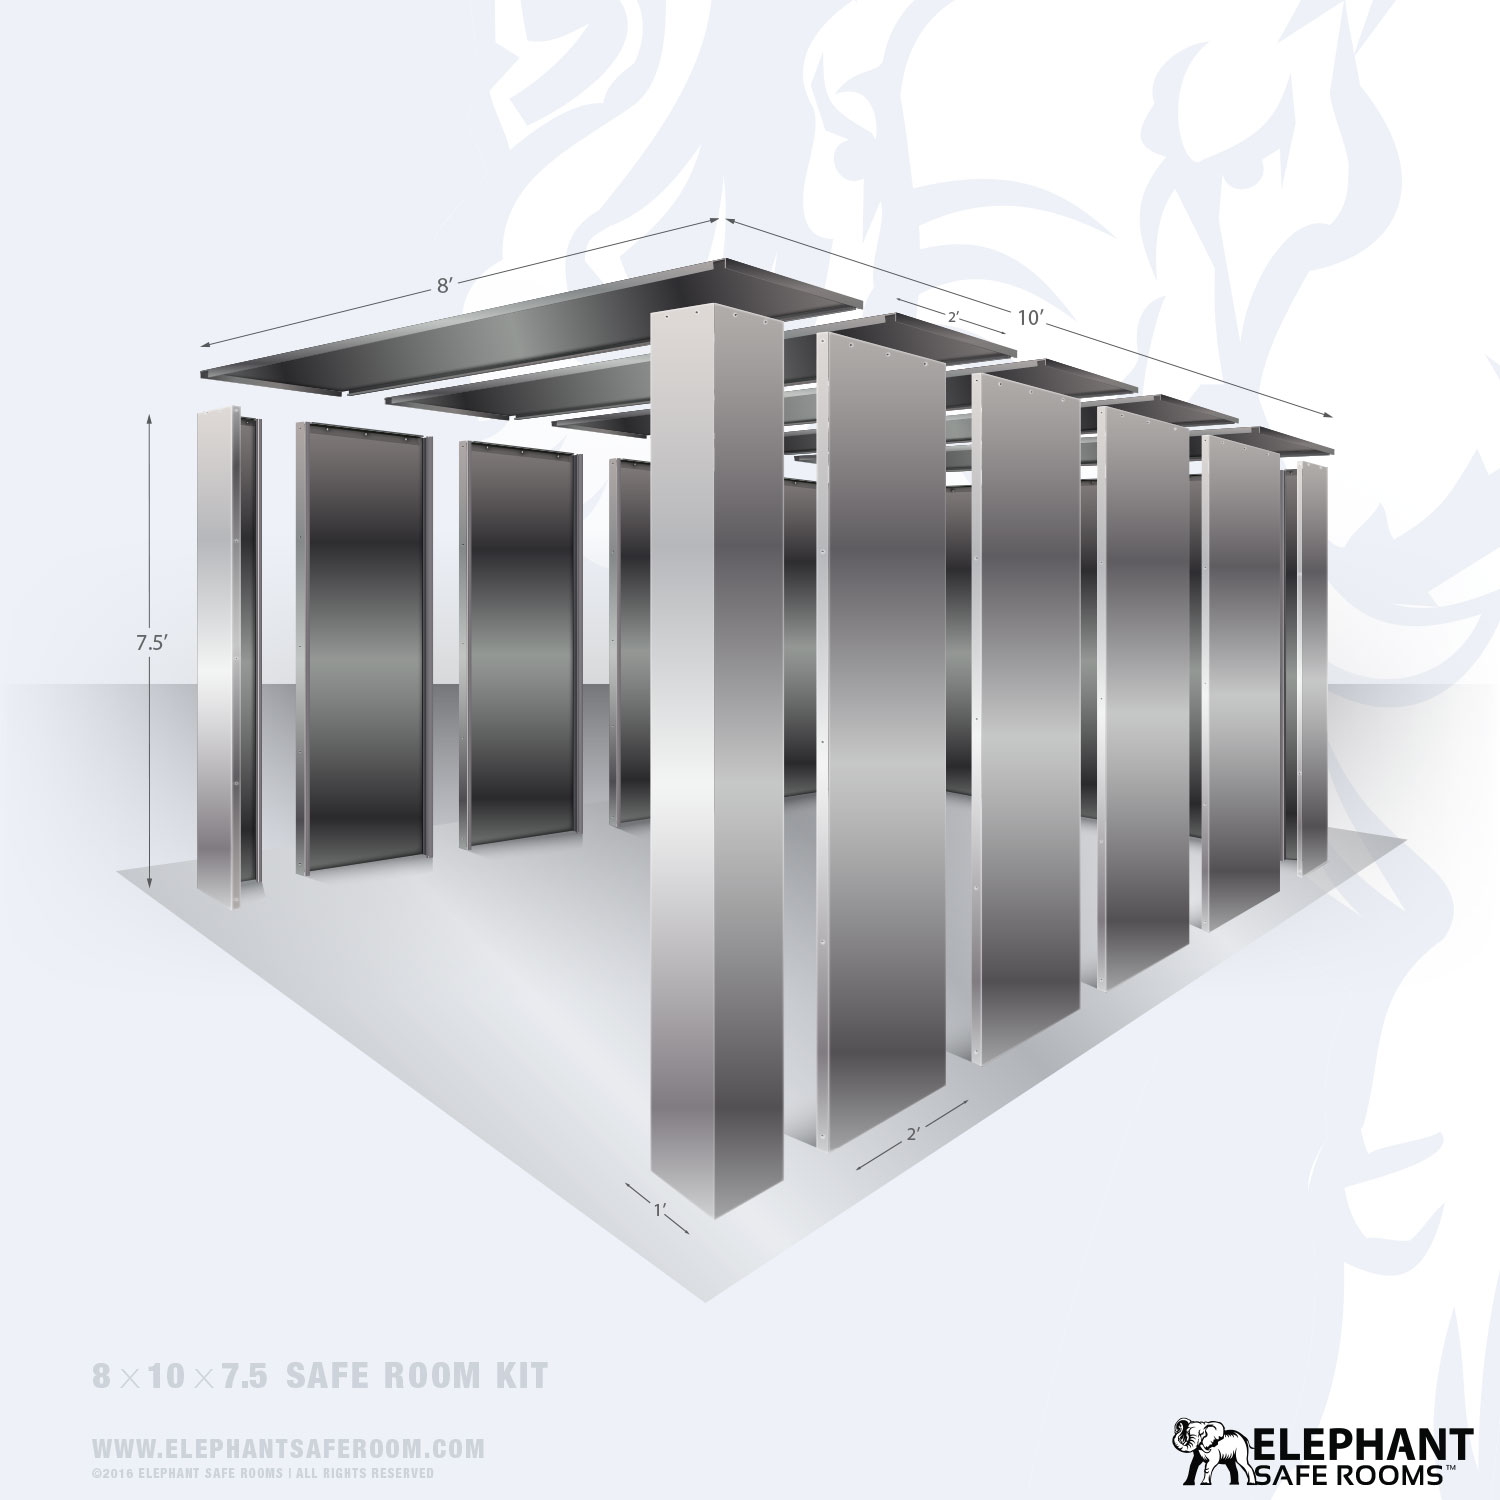 8 39 x 10 39 panelized safe room kit elephant safe room for Safe room